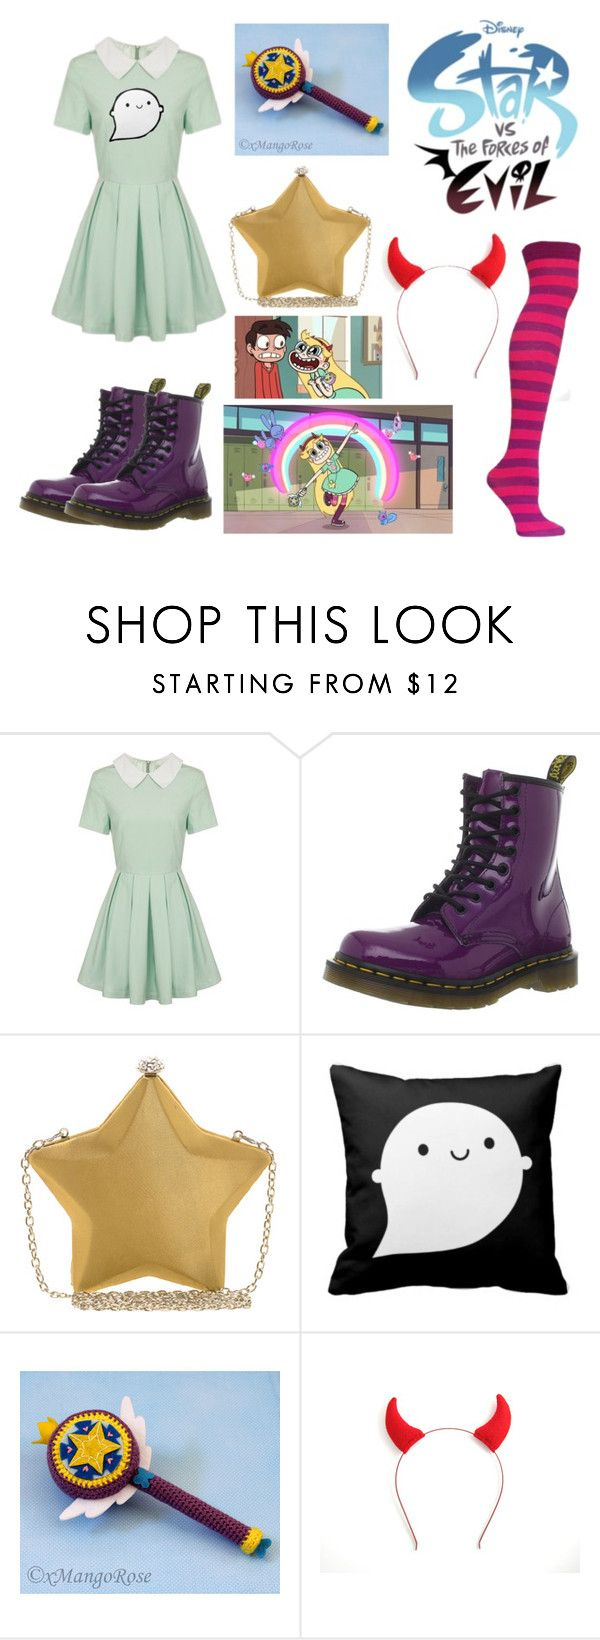 """Star VS The Forces of Evil"" by gryffindorgirl-i ❤ liked on Polyvore featuring Lavish Alice, Dr. Martens, Nali and Disney"